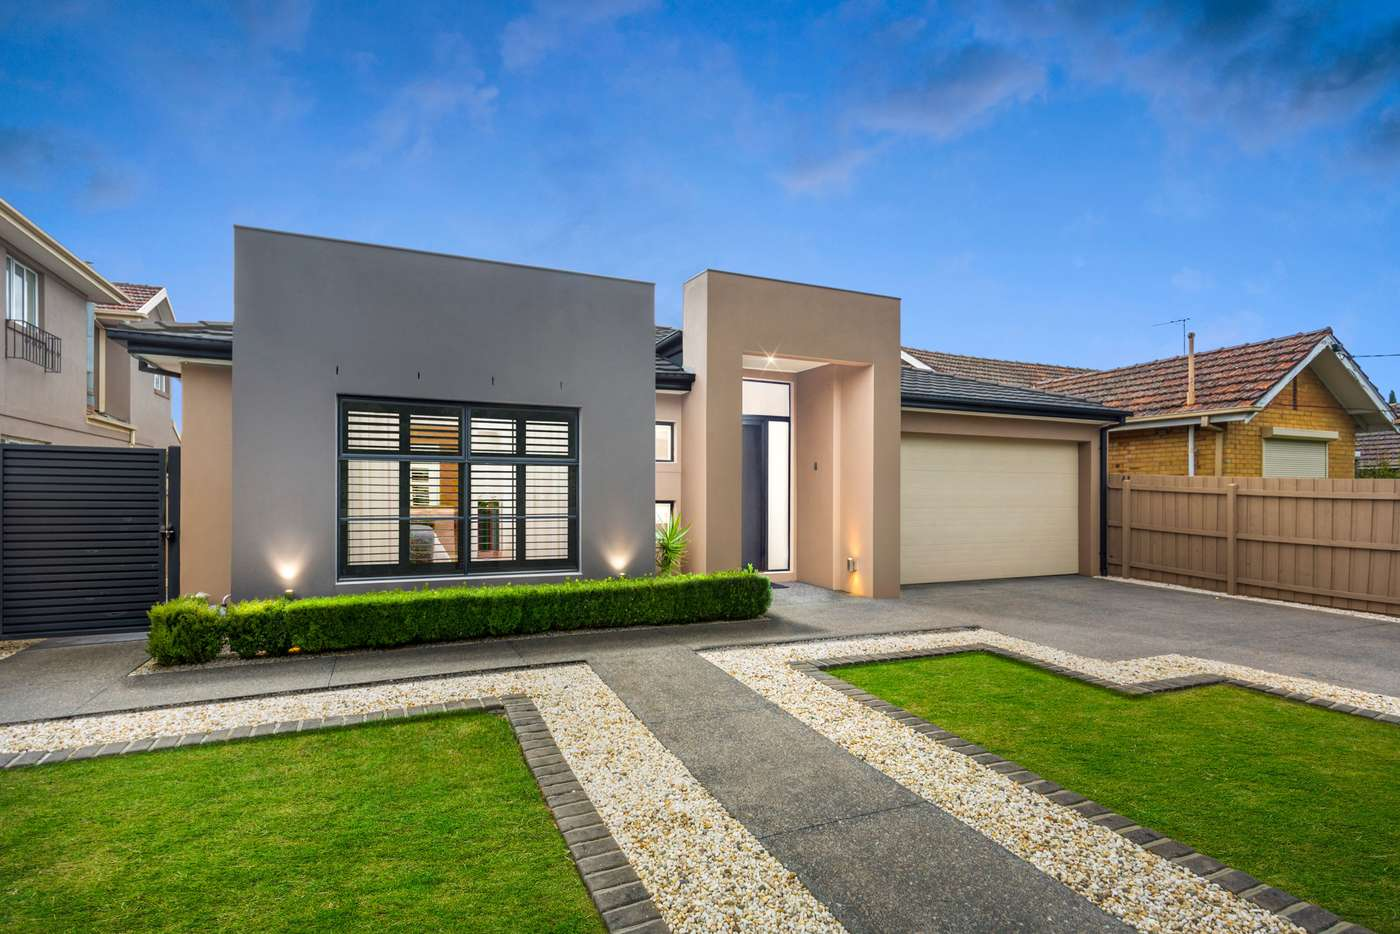 Main view of Homely house listing, 42 Capon Street, Malvern East VIC 3145